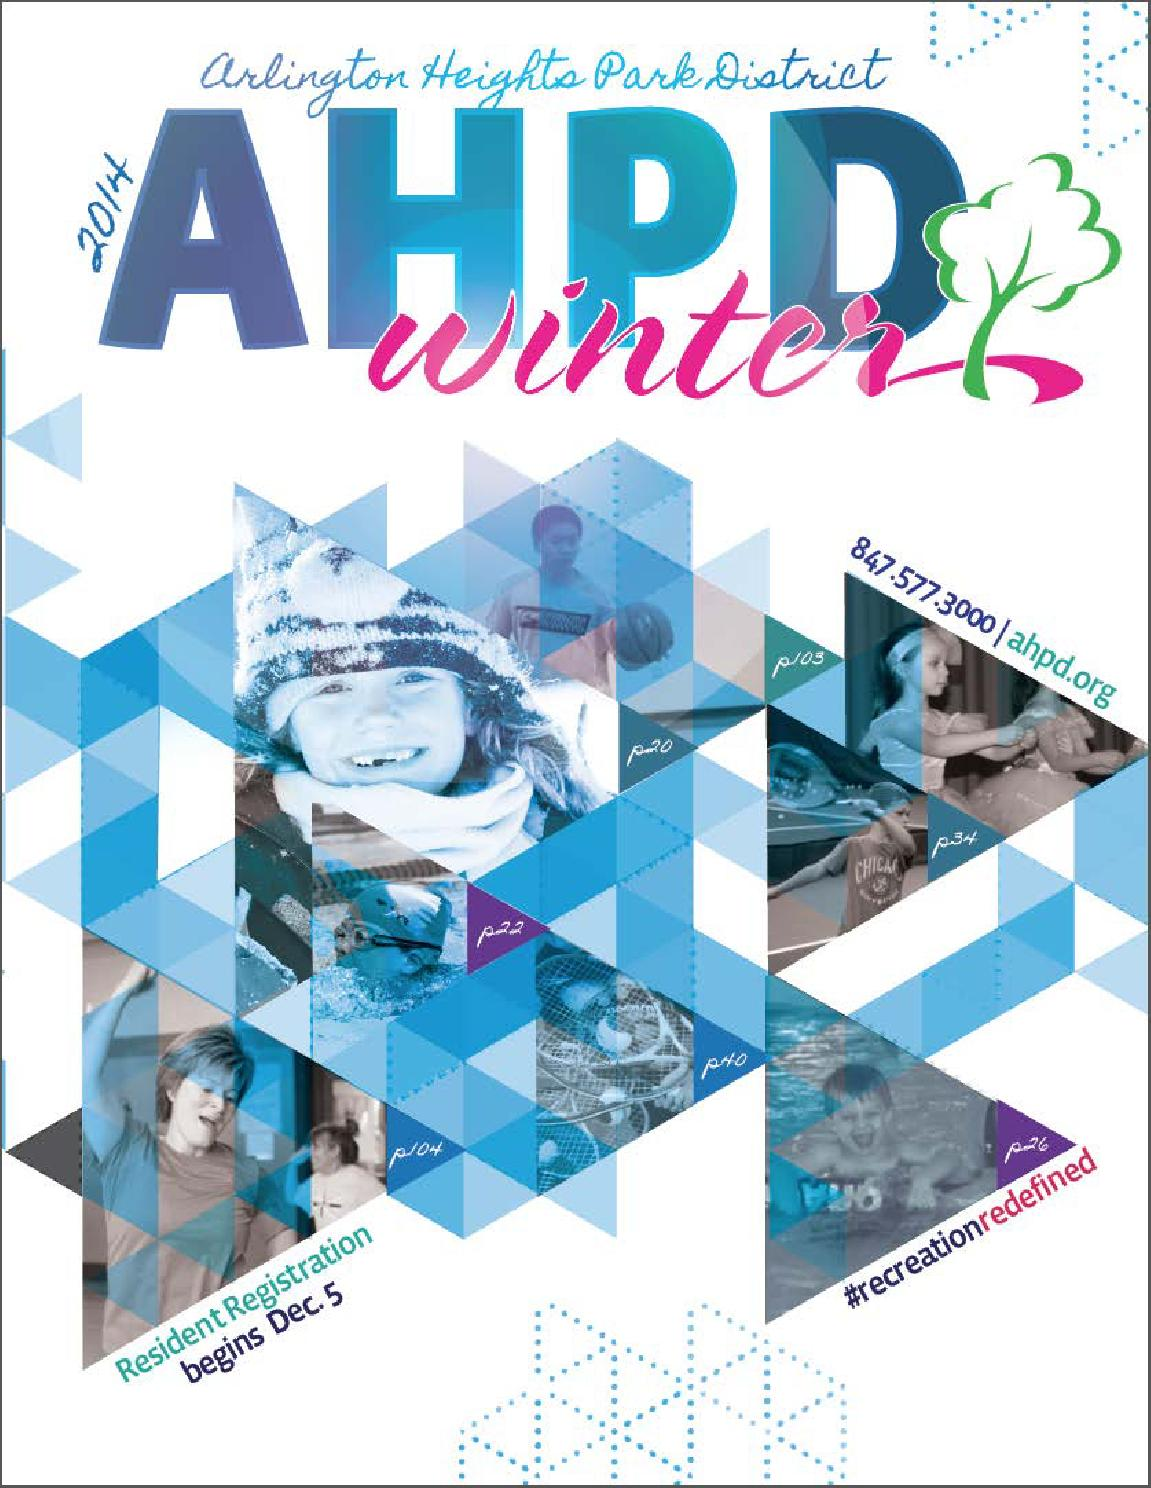 Arlington Heights Park Districts Winter 2014 Interactive Program Cd 4013 Toggle Switch Design Trick 1 Electronics Hobby Guide By District Issuu